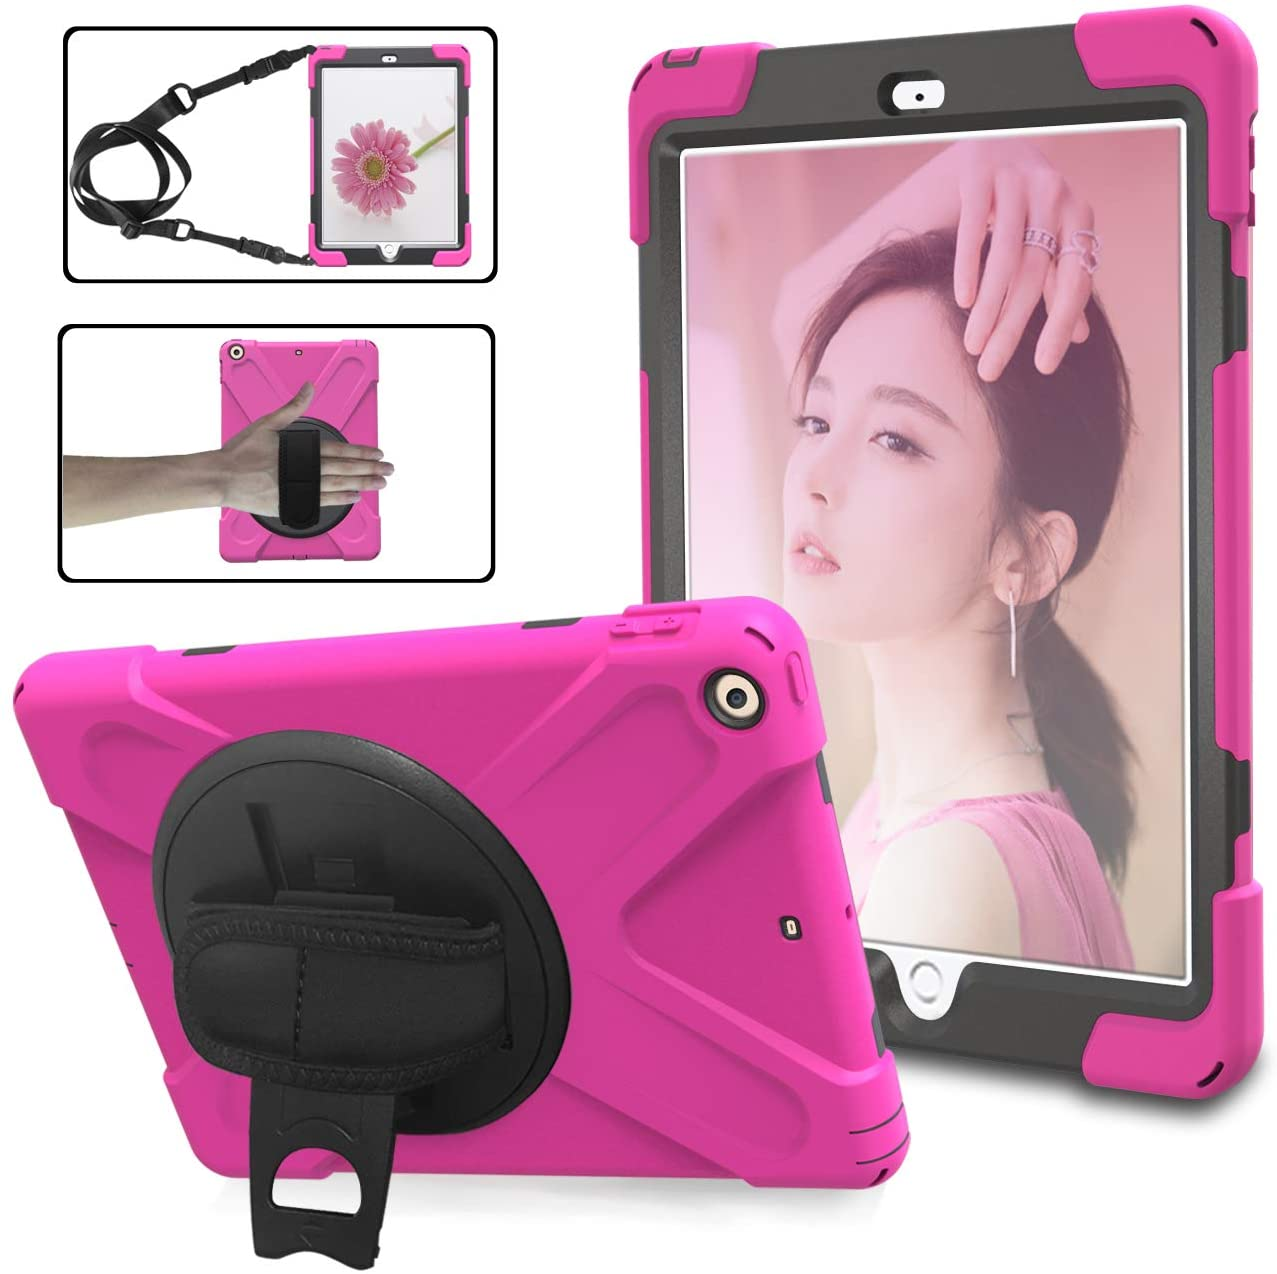 JIJIAO Pirate Series Three-in-one Anti-Drop Shell, dustproof, Equipped with 360-degree Rotating Multi-Function Handle, Hand Strap Shoulder Strap, Suitable for New iPad9.7 2017/2018 (Rose RED)